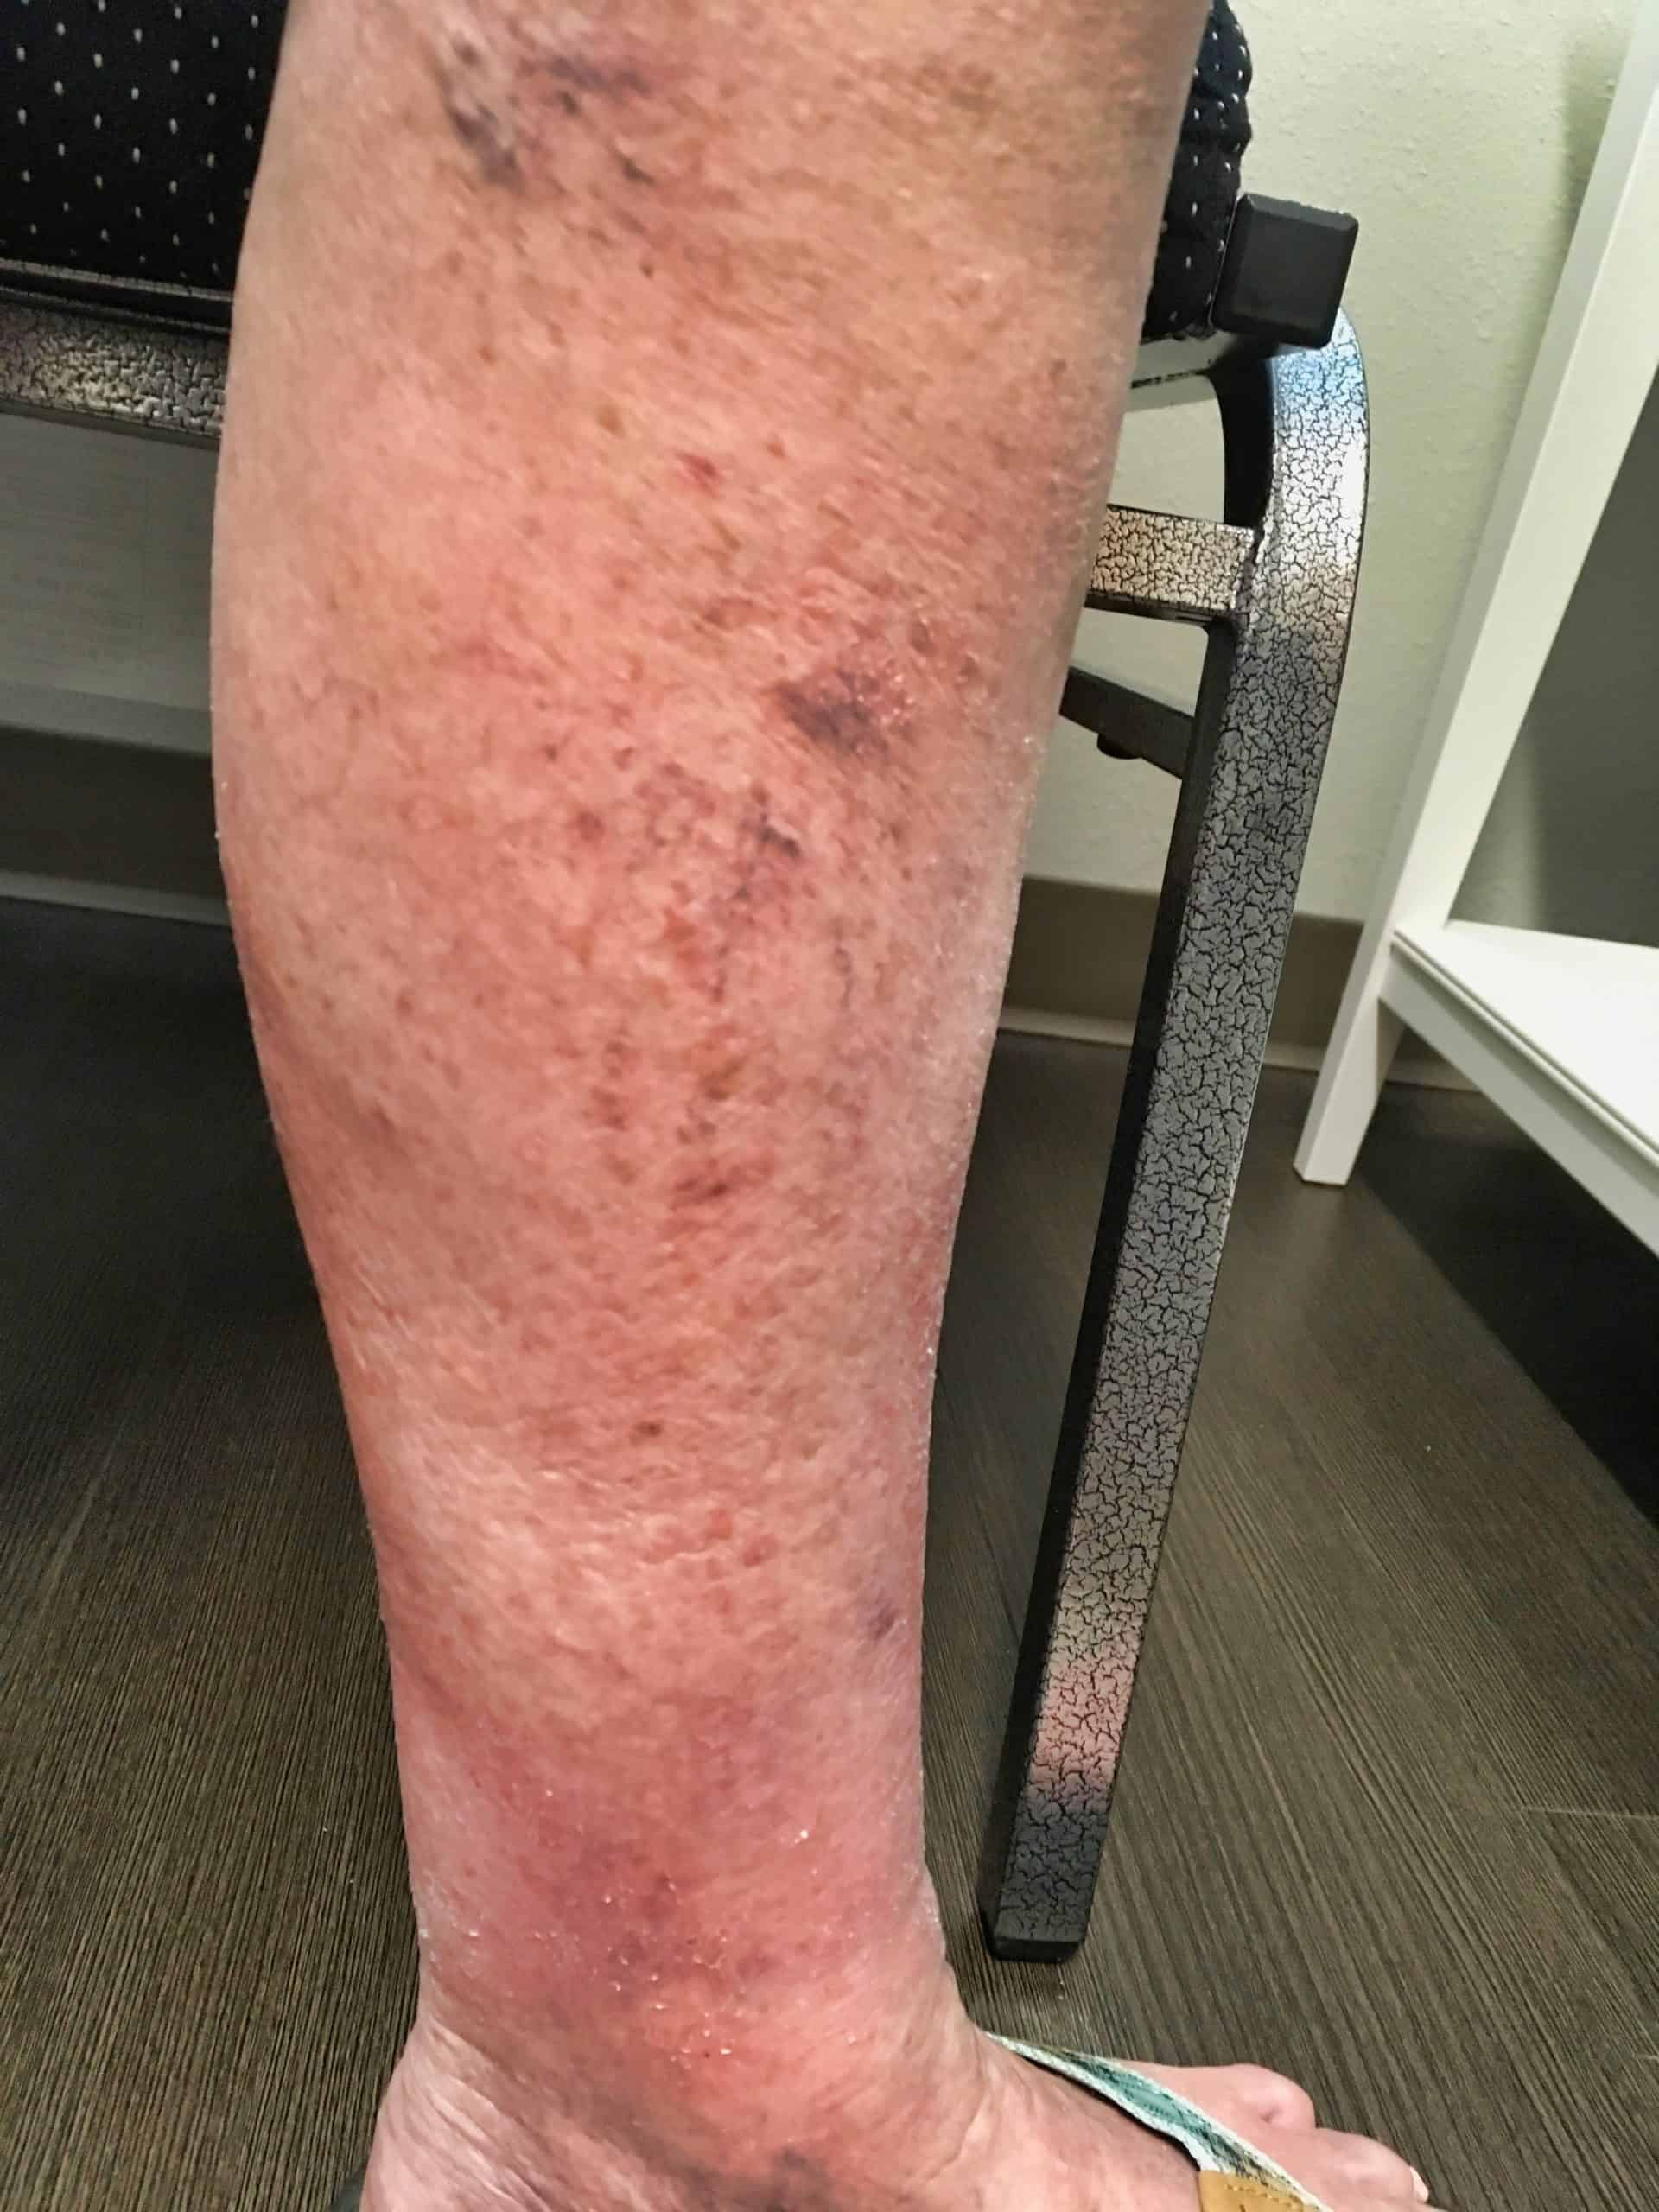 Discoloration and inflammation 6 months after treatment